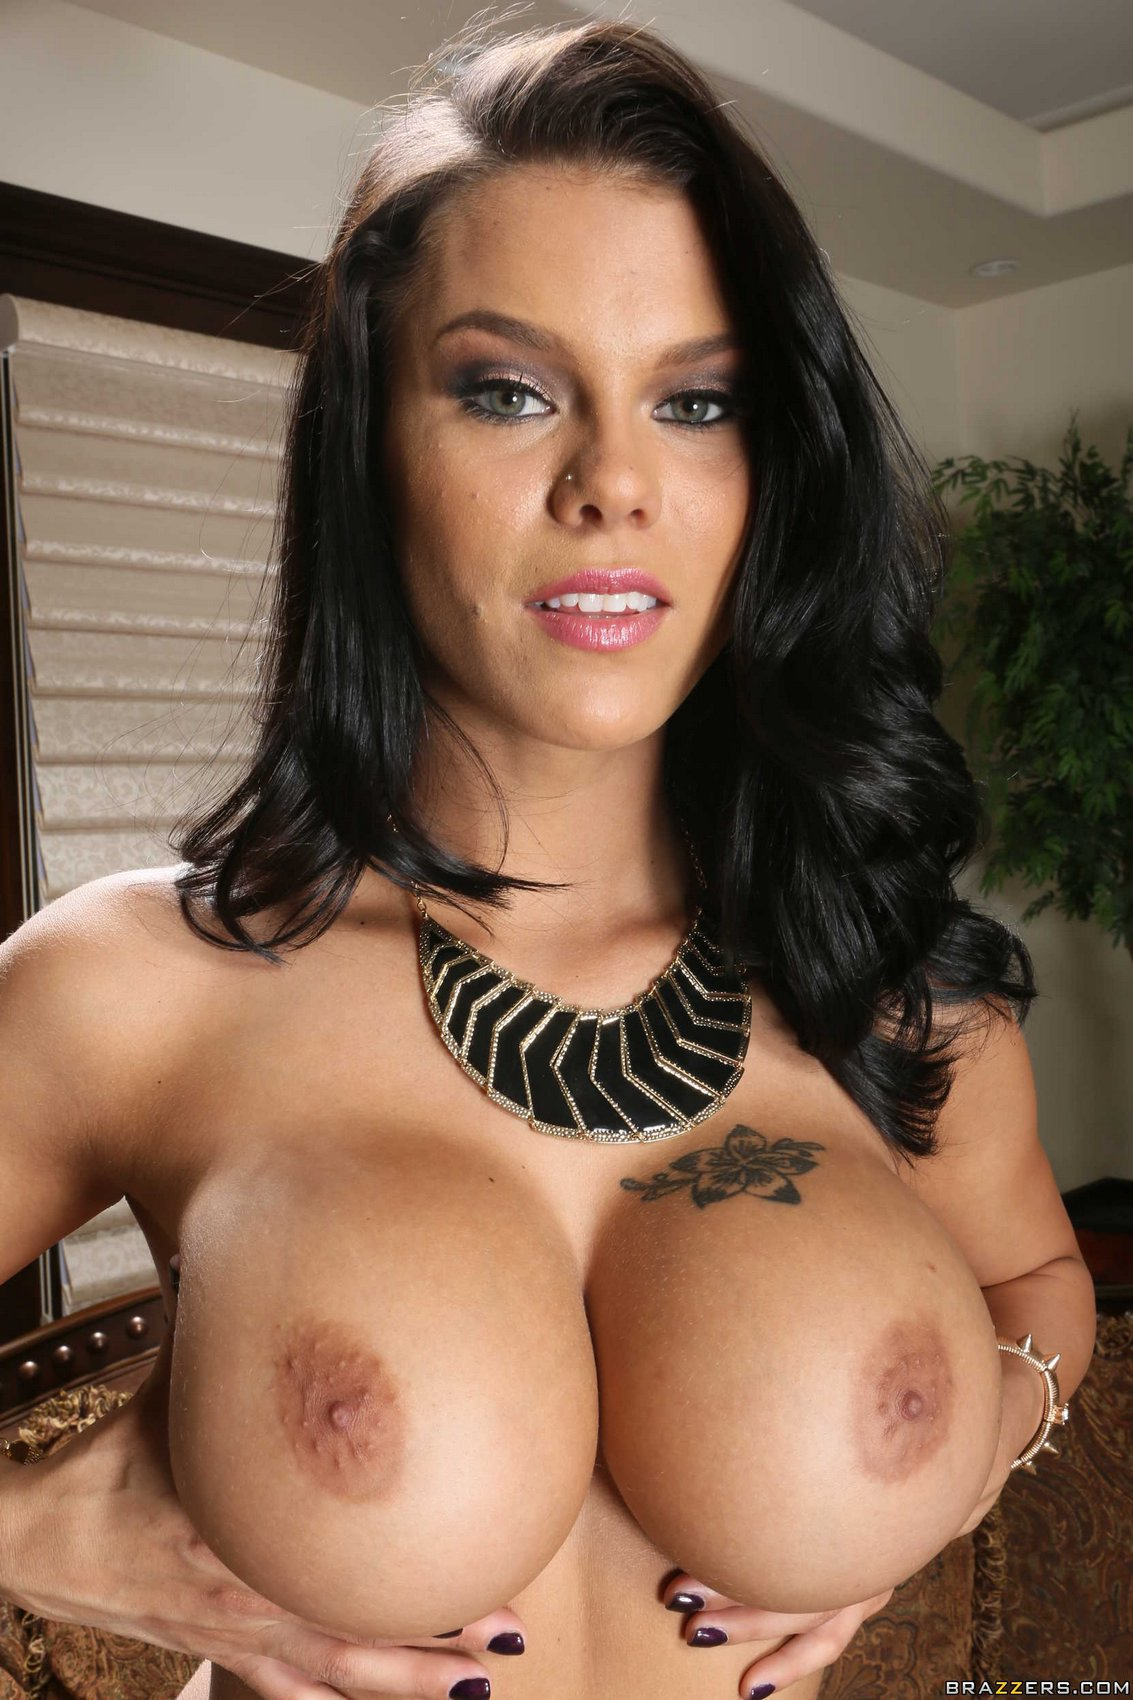 peta jensen in sexy outfit stripping and showing her big boobs - my